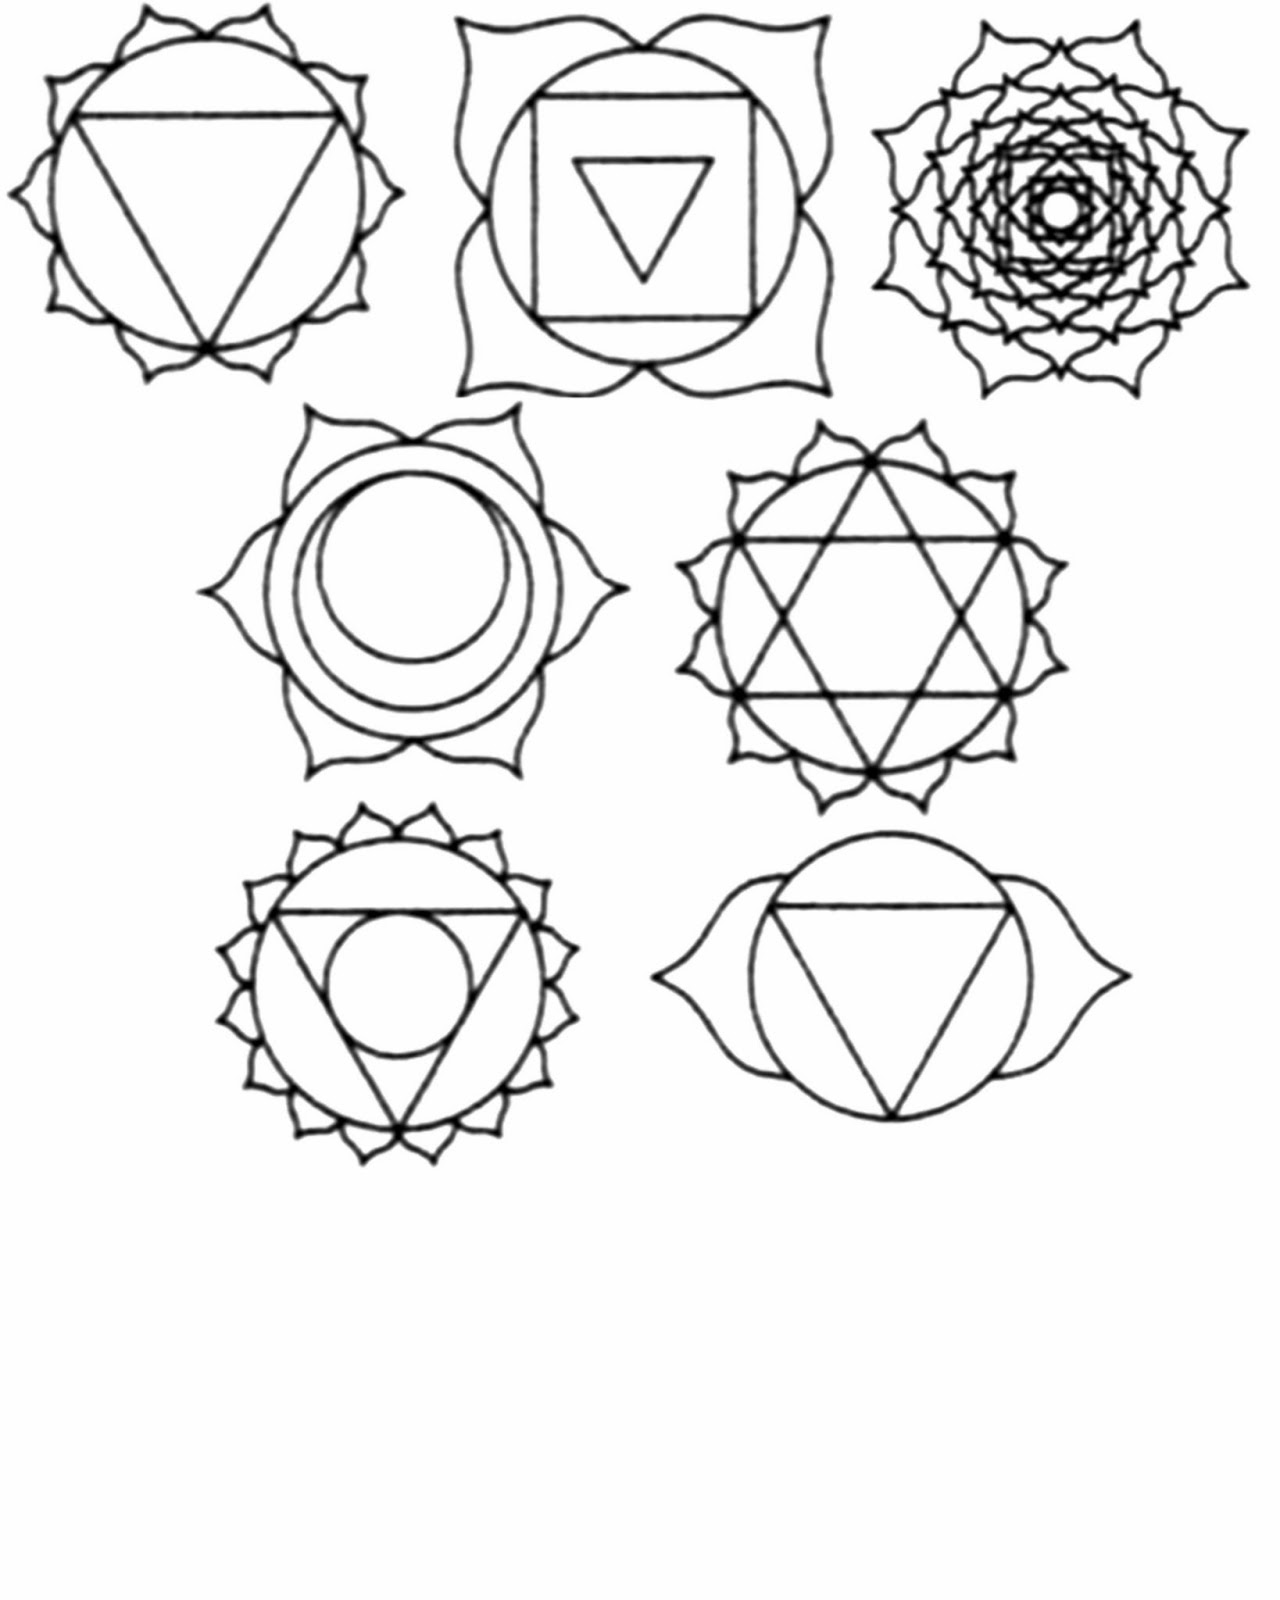 chakra symbols coloring pages - photo#5